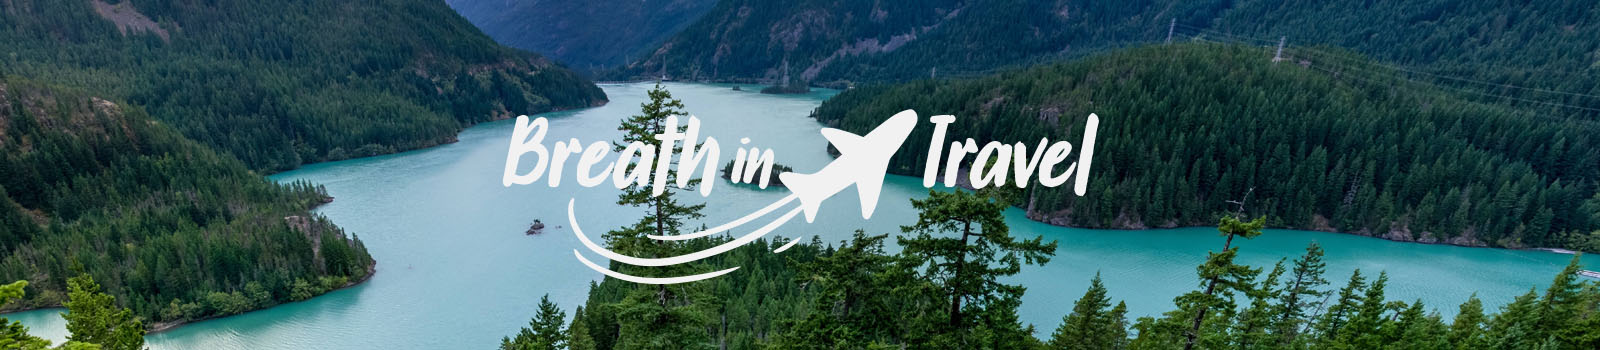 Breath in Travel